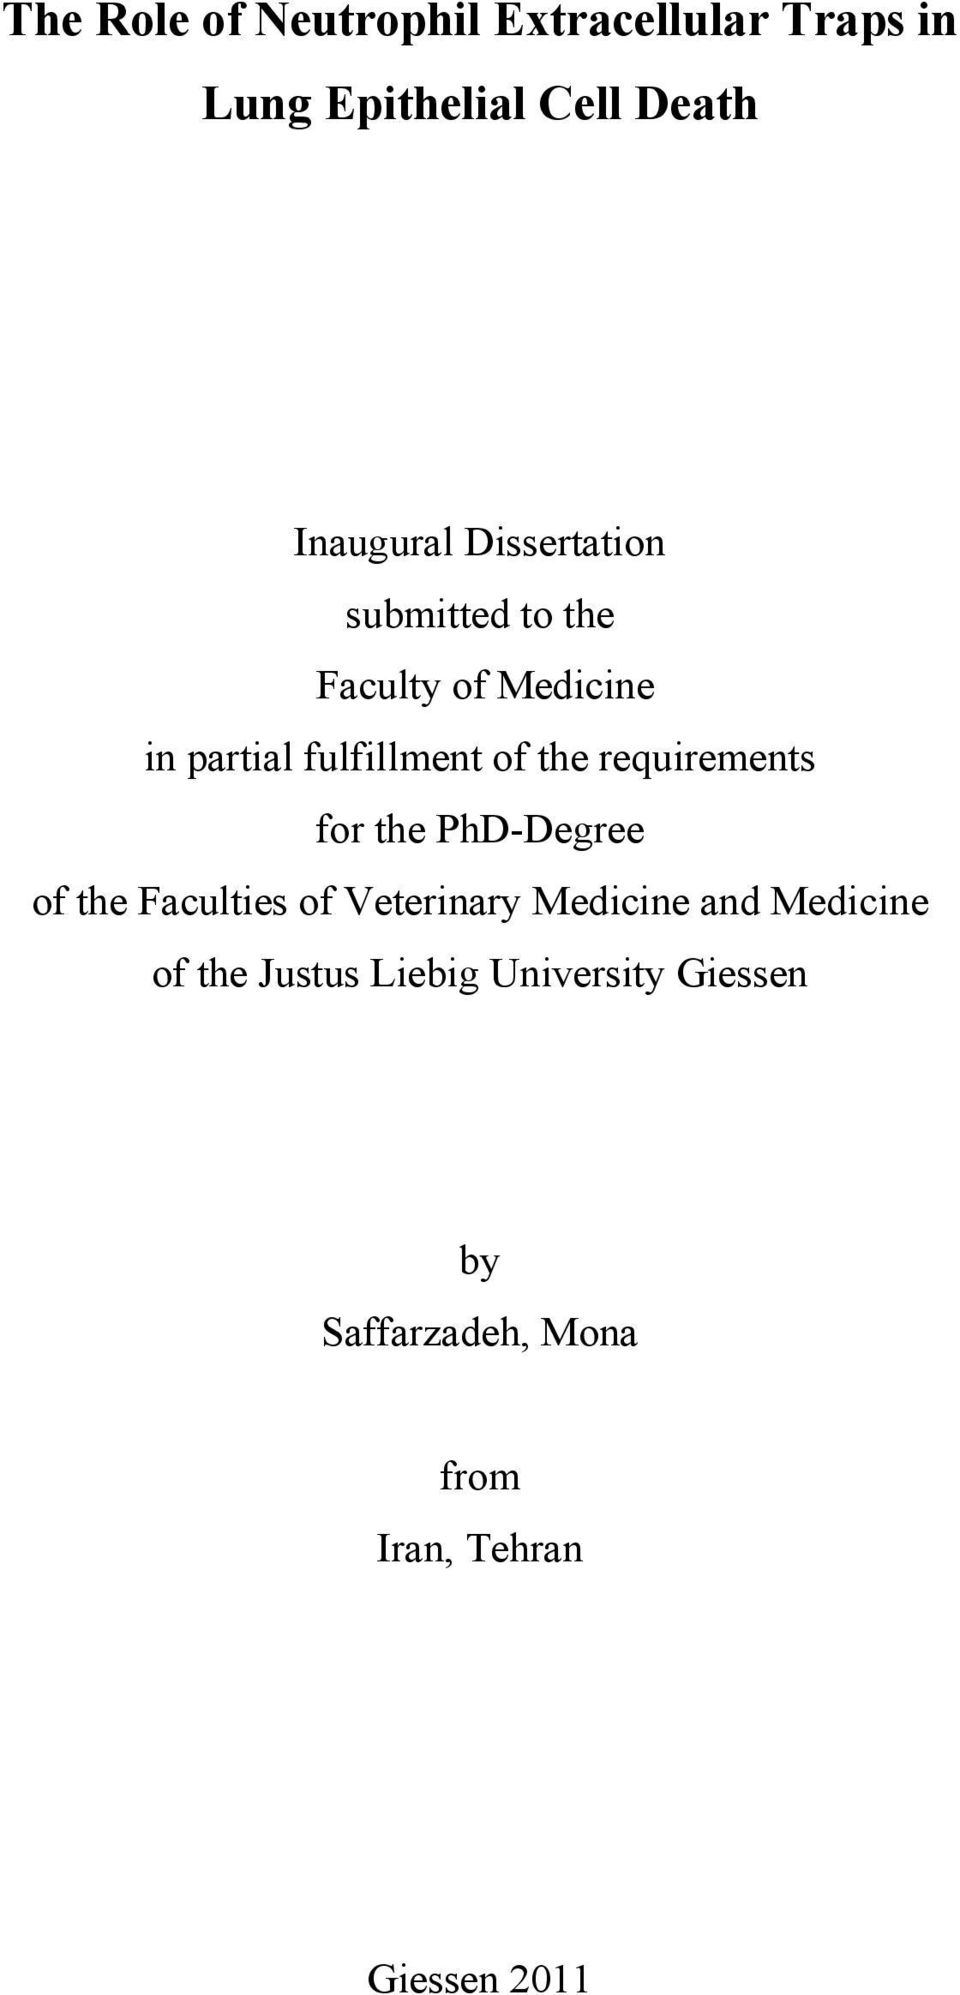 requirements for the PhD-Degree of the Faculties of Veterinary Medicine and Medicine